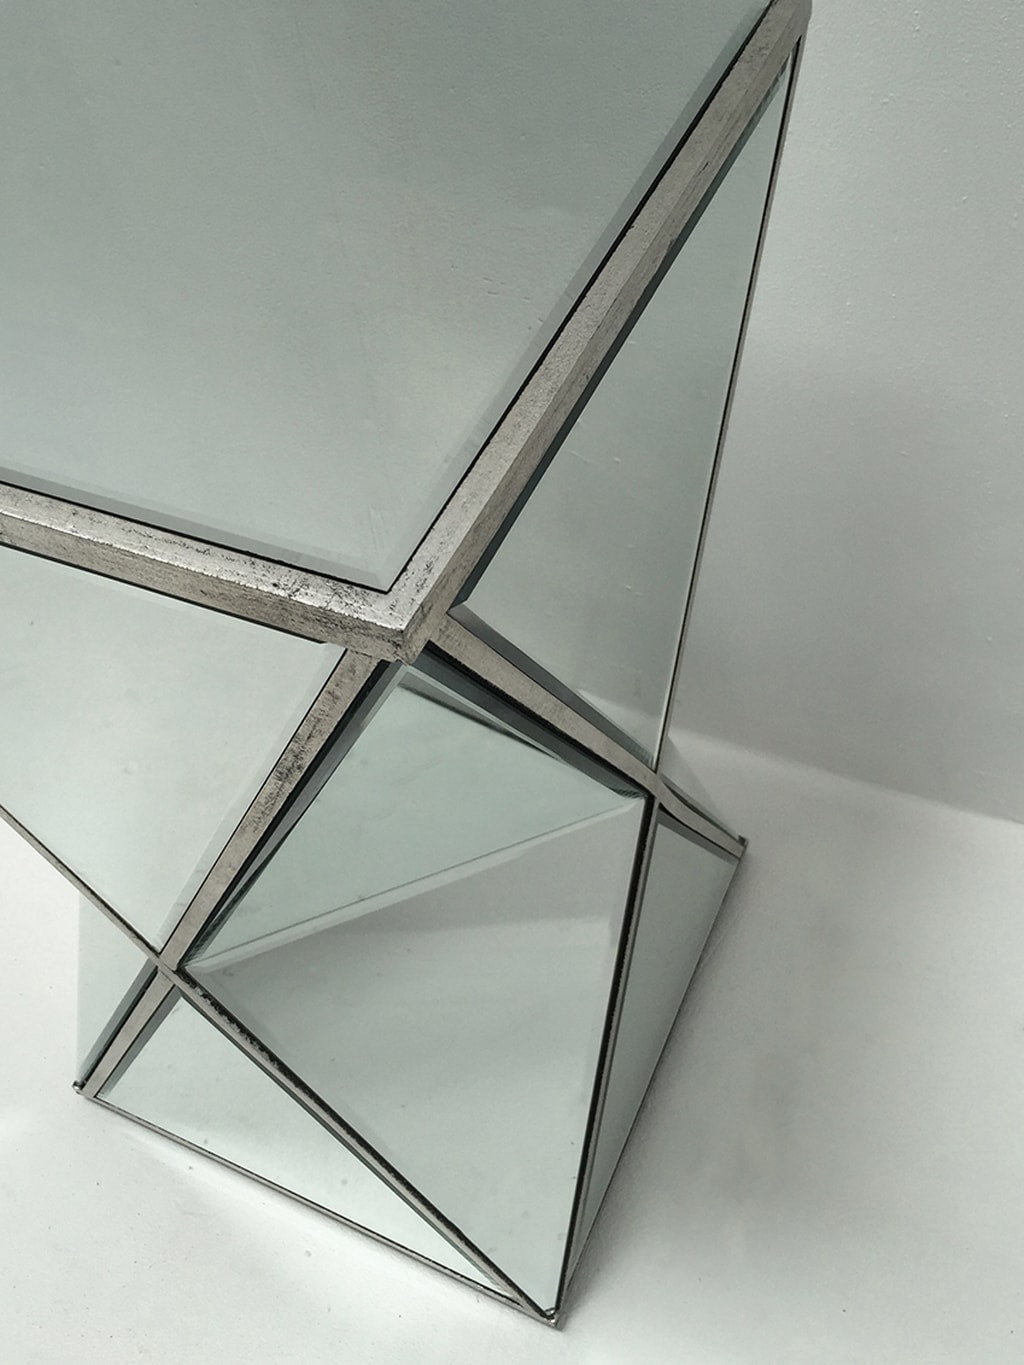 Mirrored Side Table with triangle bevelled glass panels